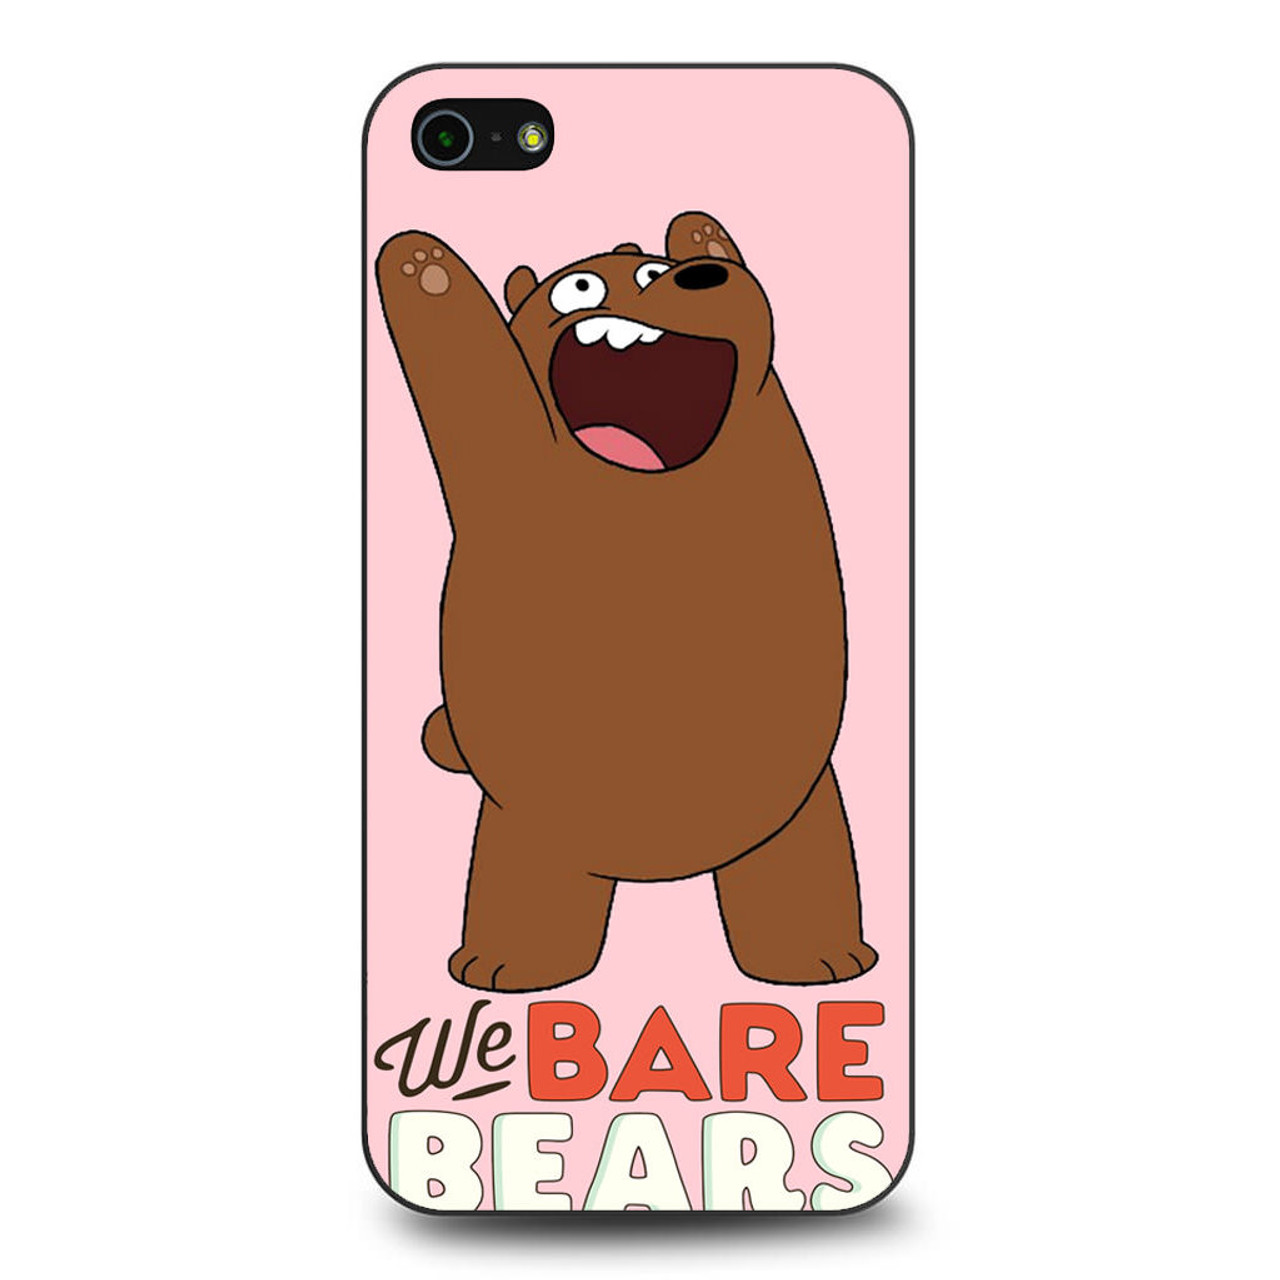 new arrival 0782c f36d2 We Bare Bears iPhone 5/5S/SE Case